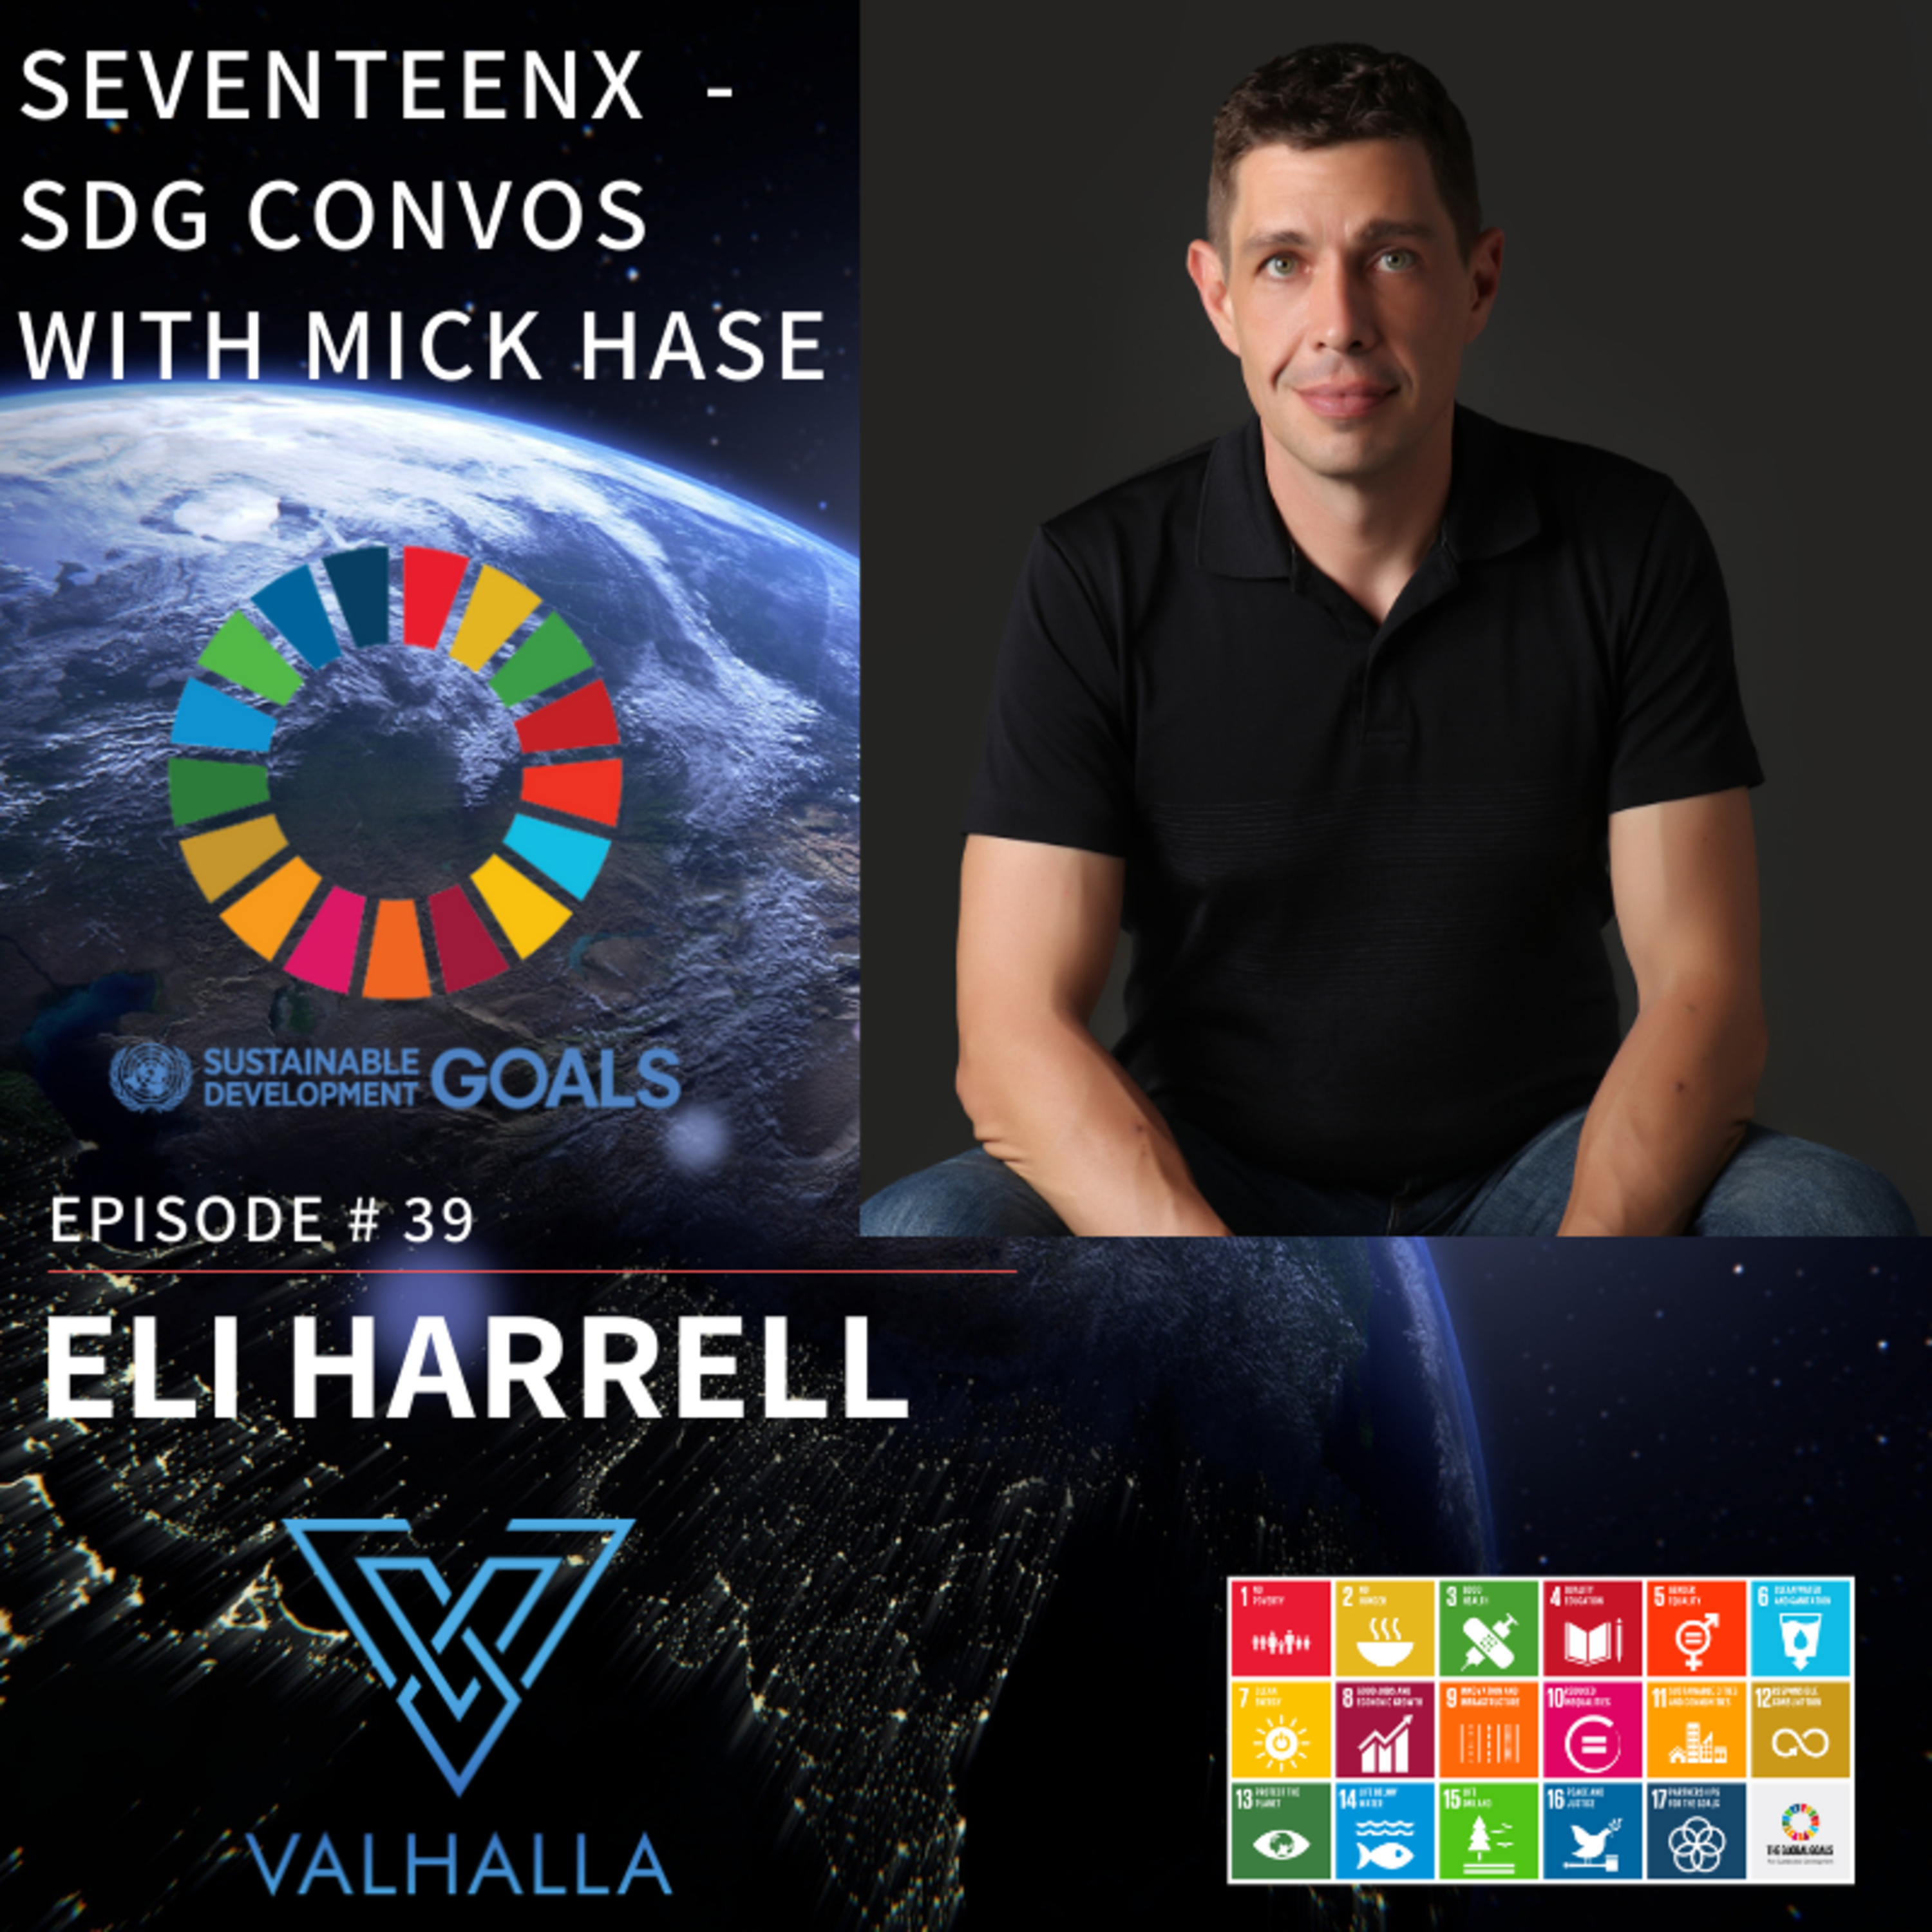 Understanding people and creating solutions via shared purpose with Eli Harrell